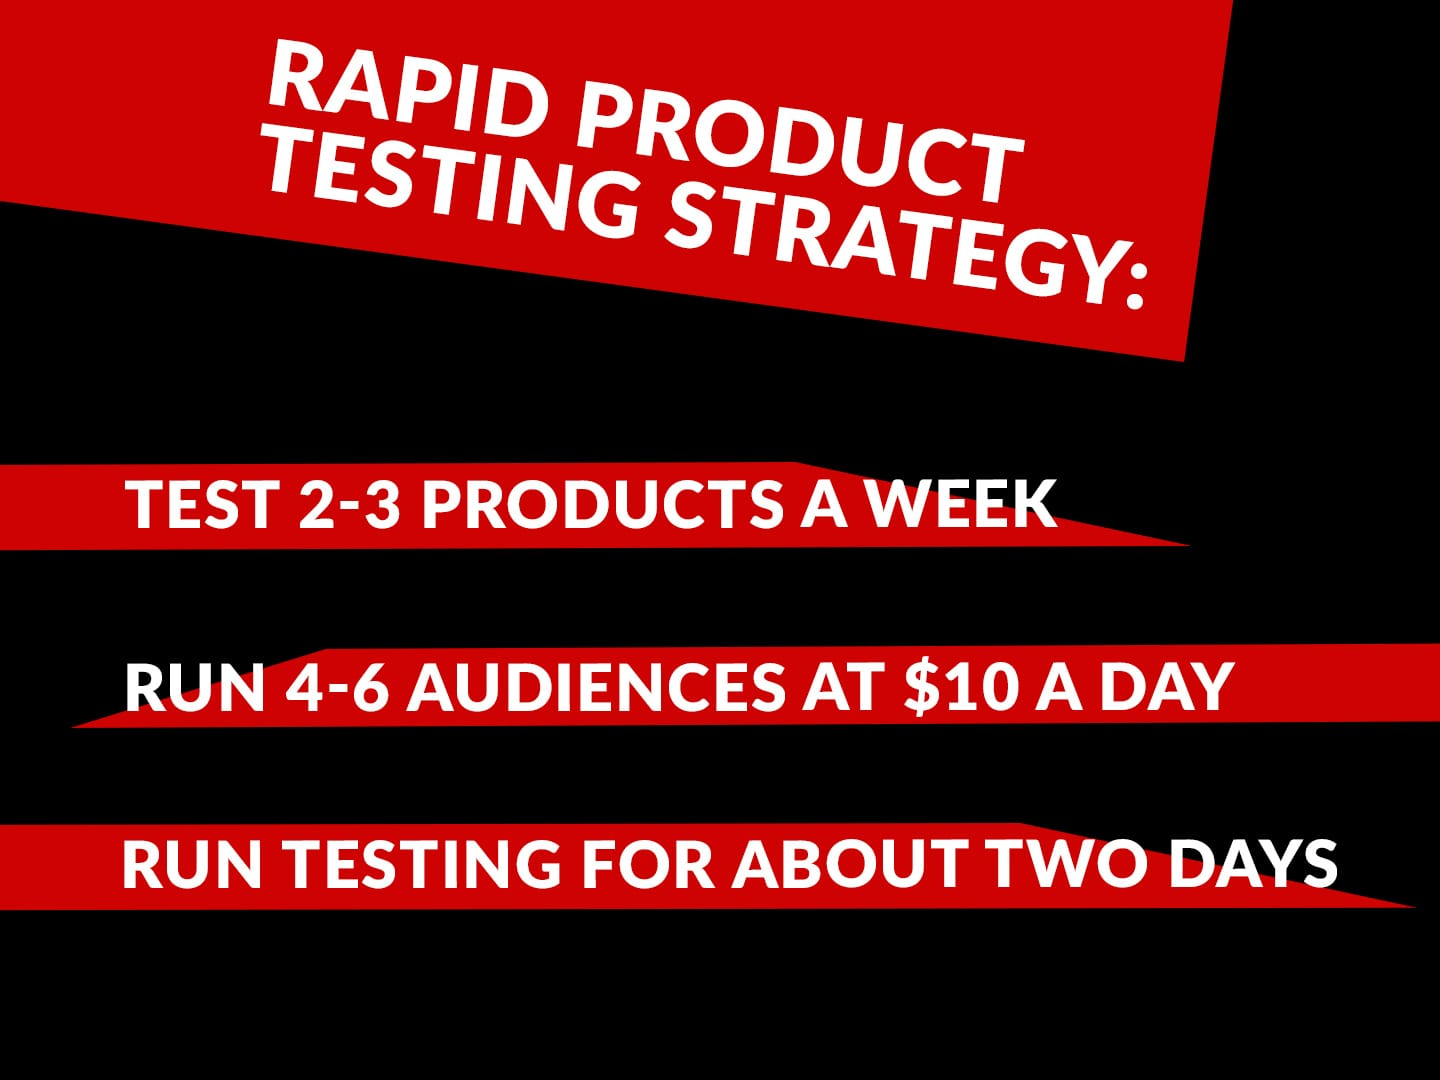 Rapid-Product-Testing-&-Getting-Ready-to-Scale-at-Black-Friday-and-Cyber-Monday-Weekend